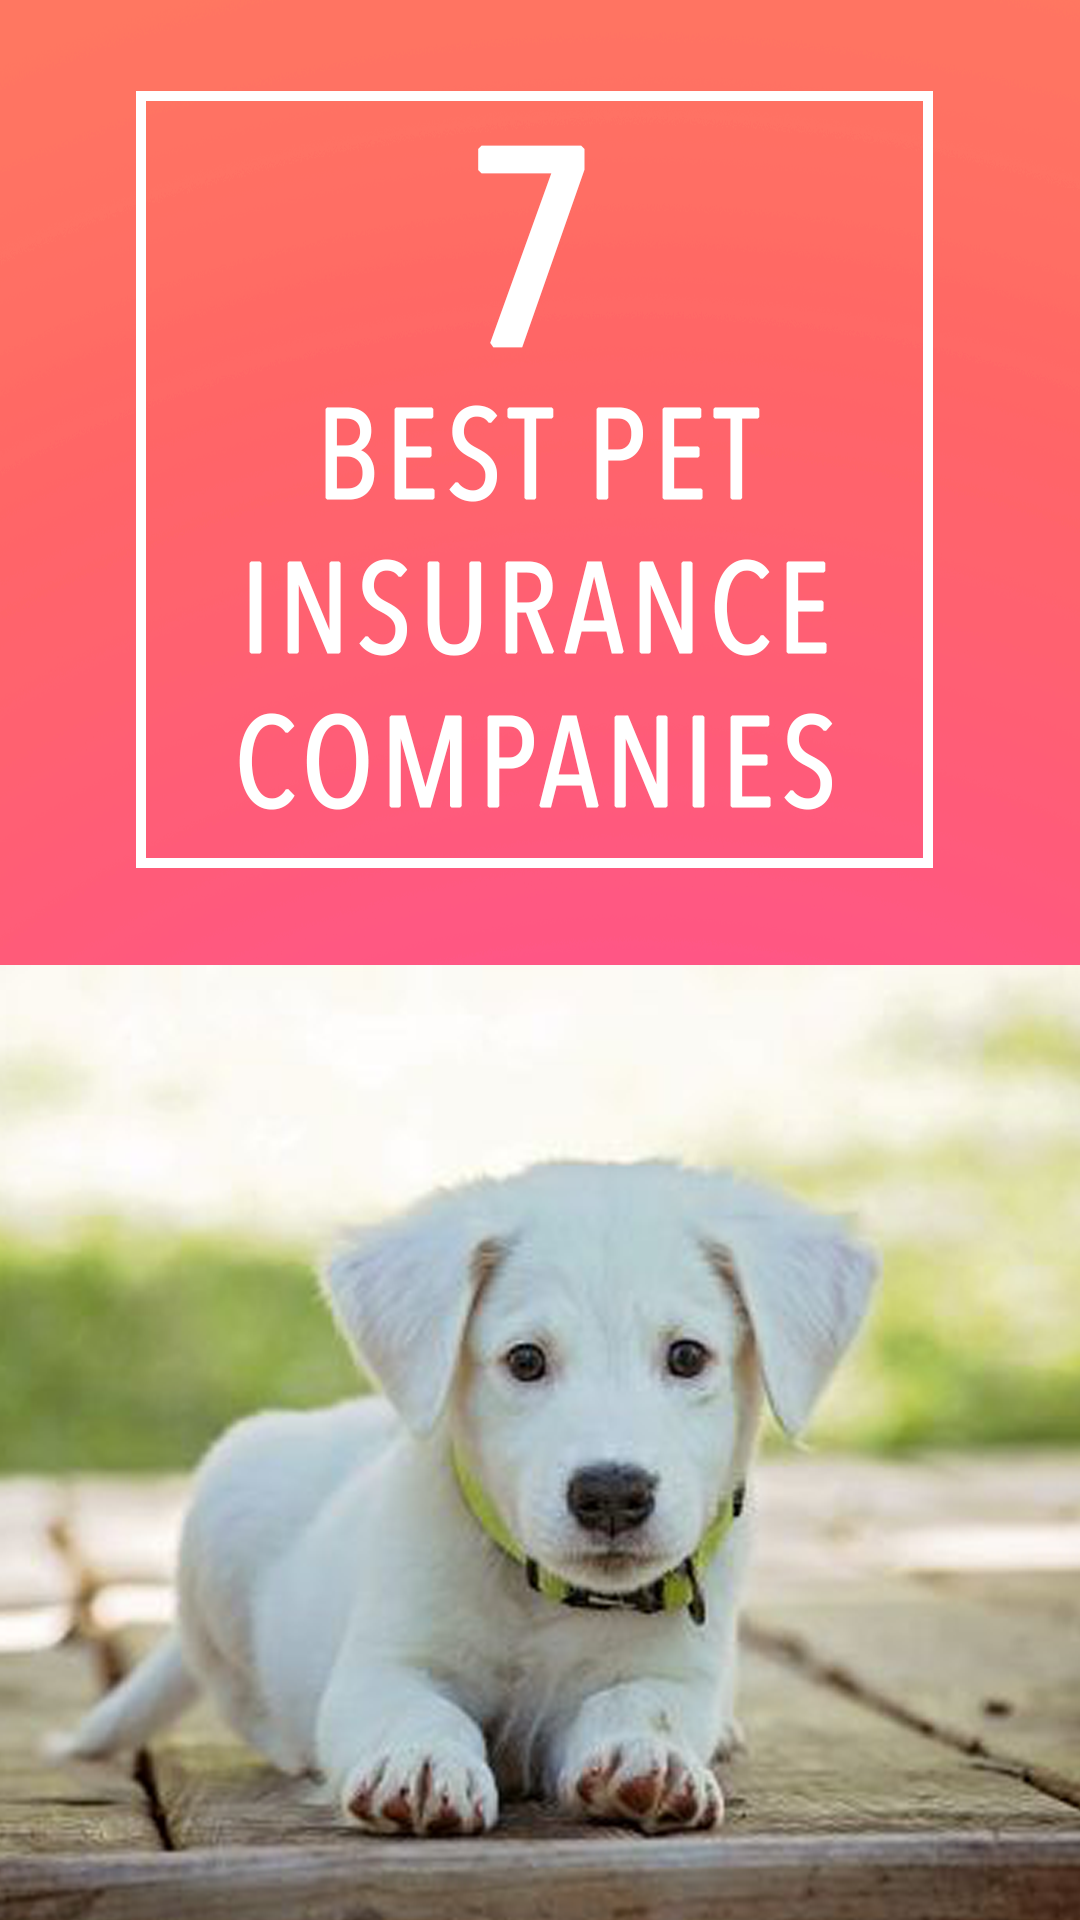 7 Of The Best Pet Insurance Companies According To Actual Pet